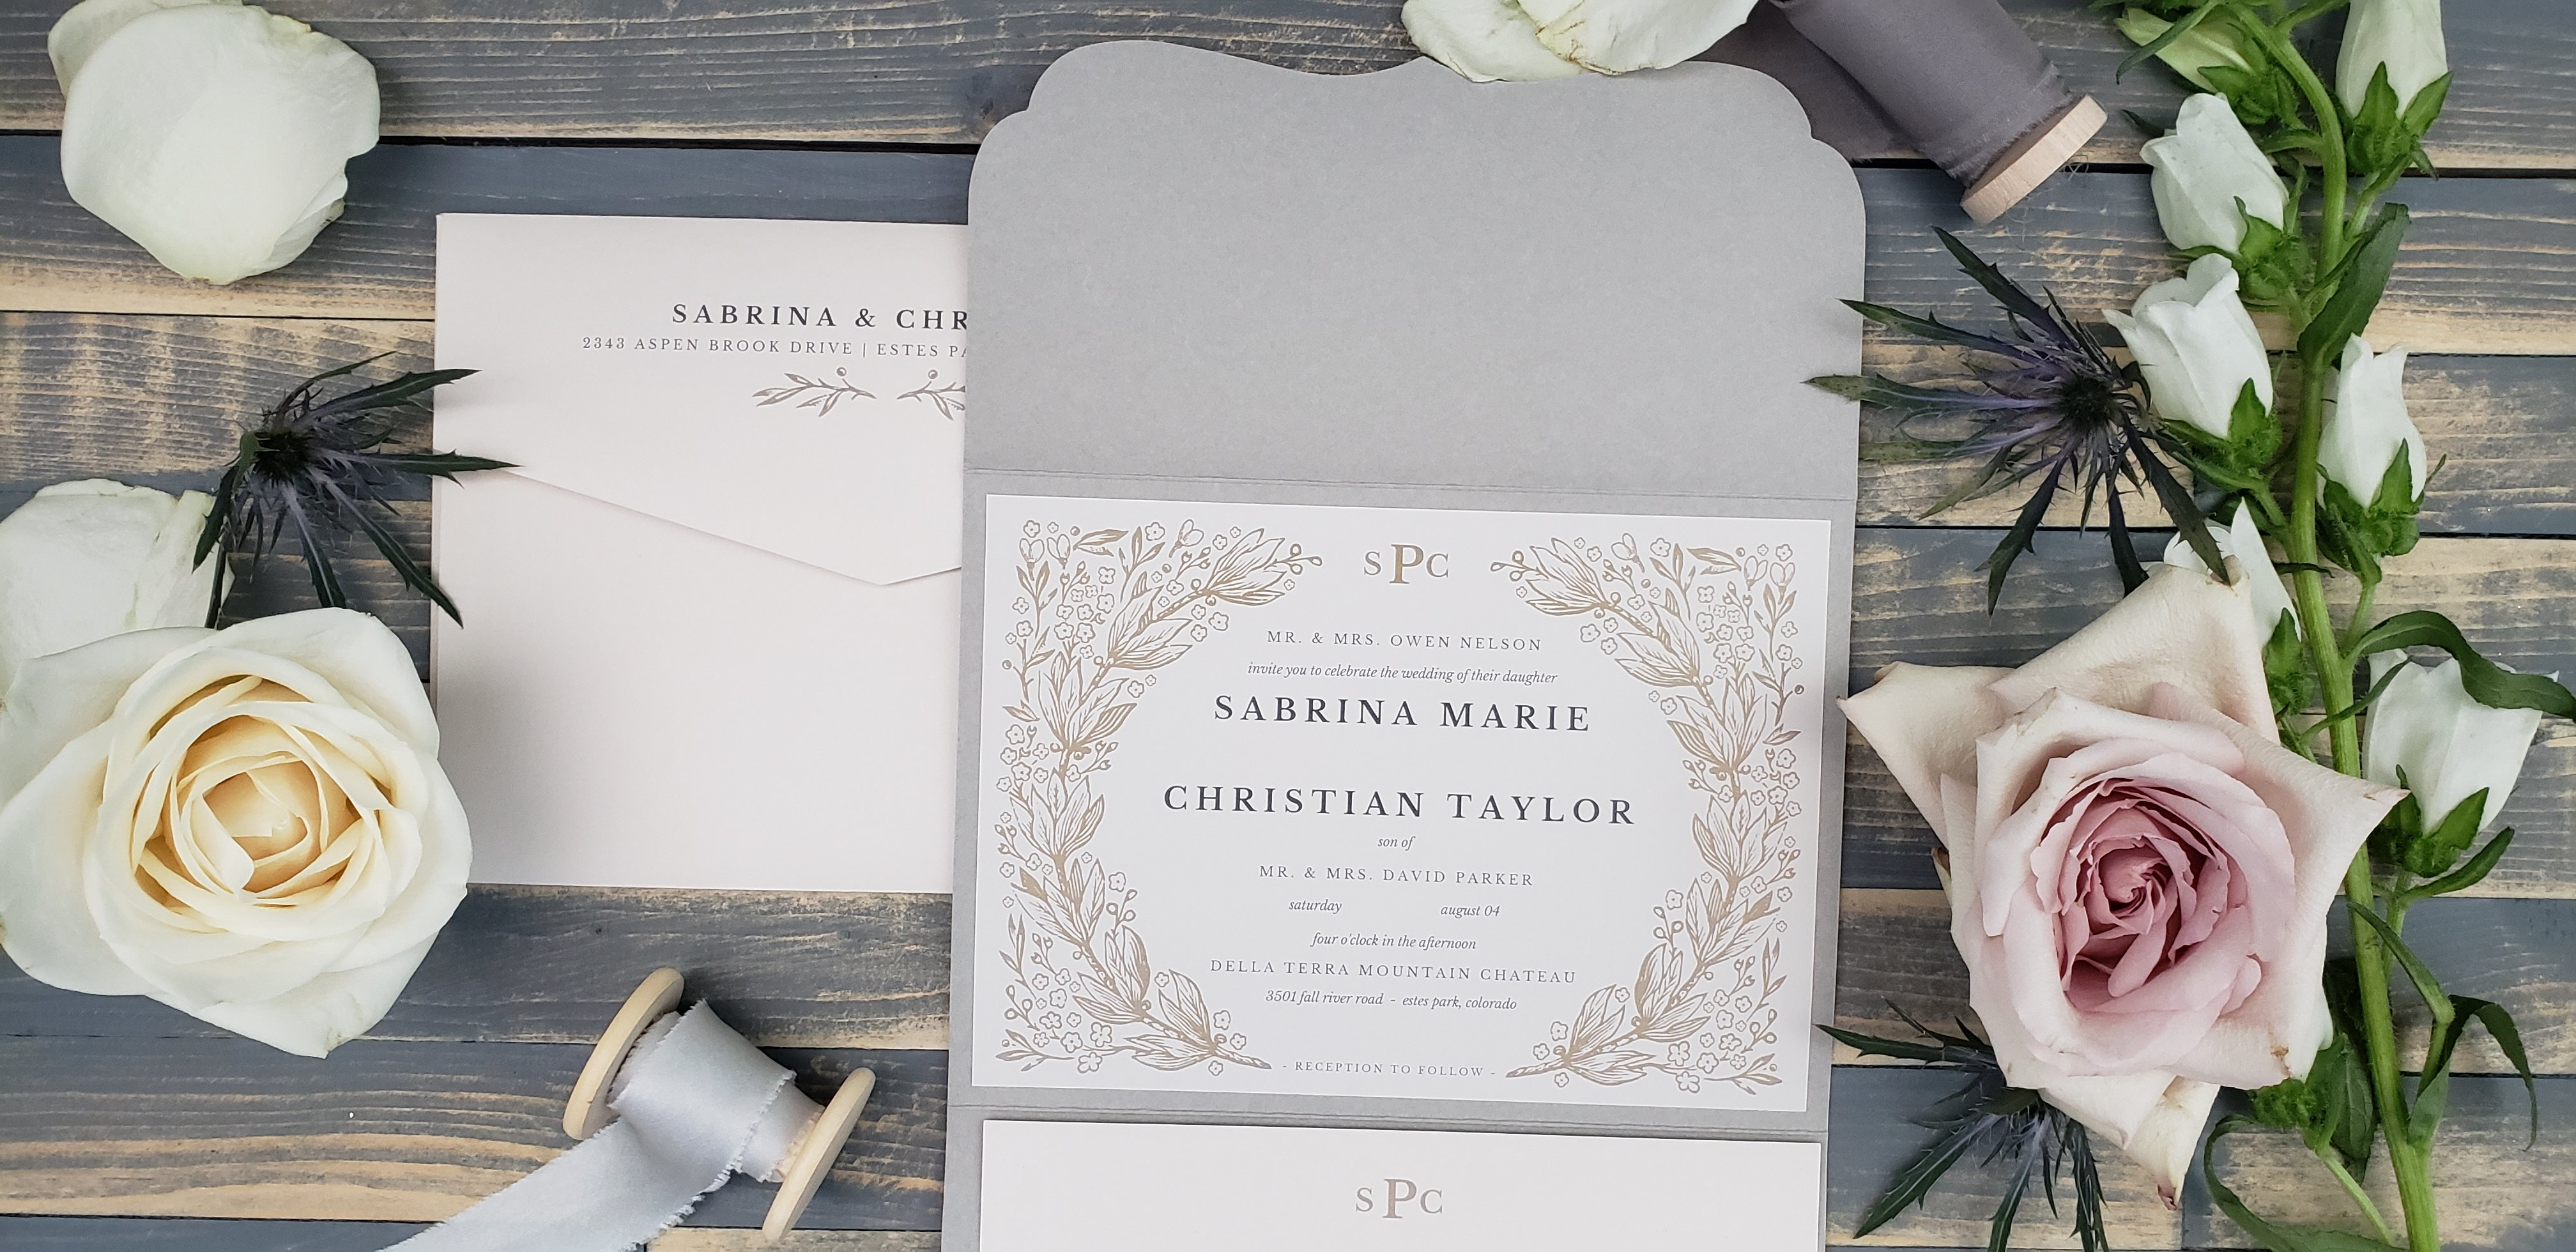 Classic Fall Neutral Wedding Invitation: Sabrina and Christian